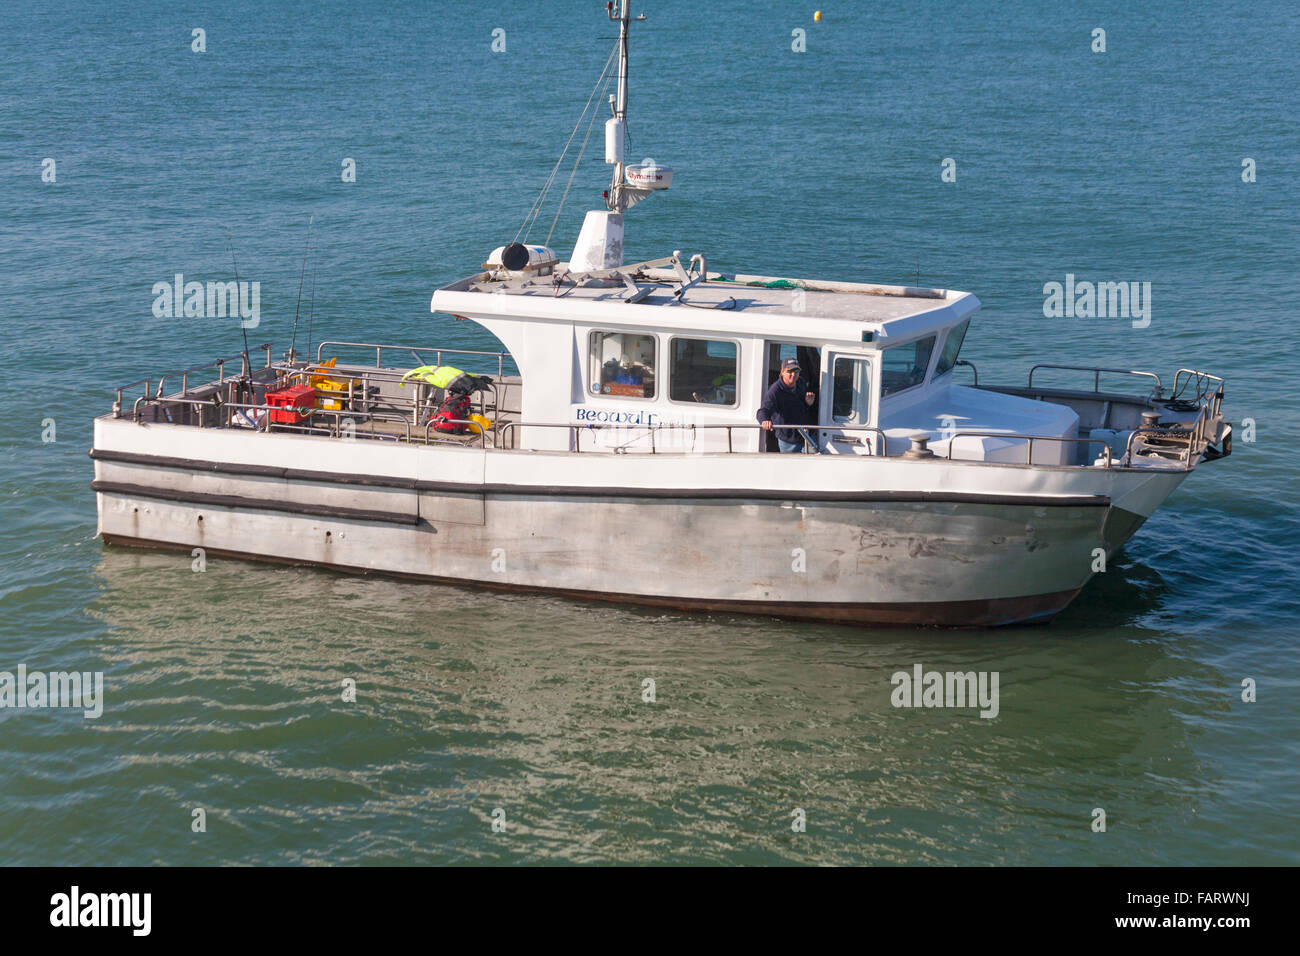 Beowulf Poole, a Cat Fish 38 aluminium catamaran vessel that offers fishing charters, in Bournemouth Bay in October - Stock Image